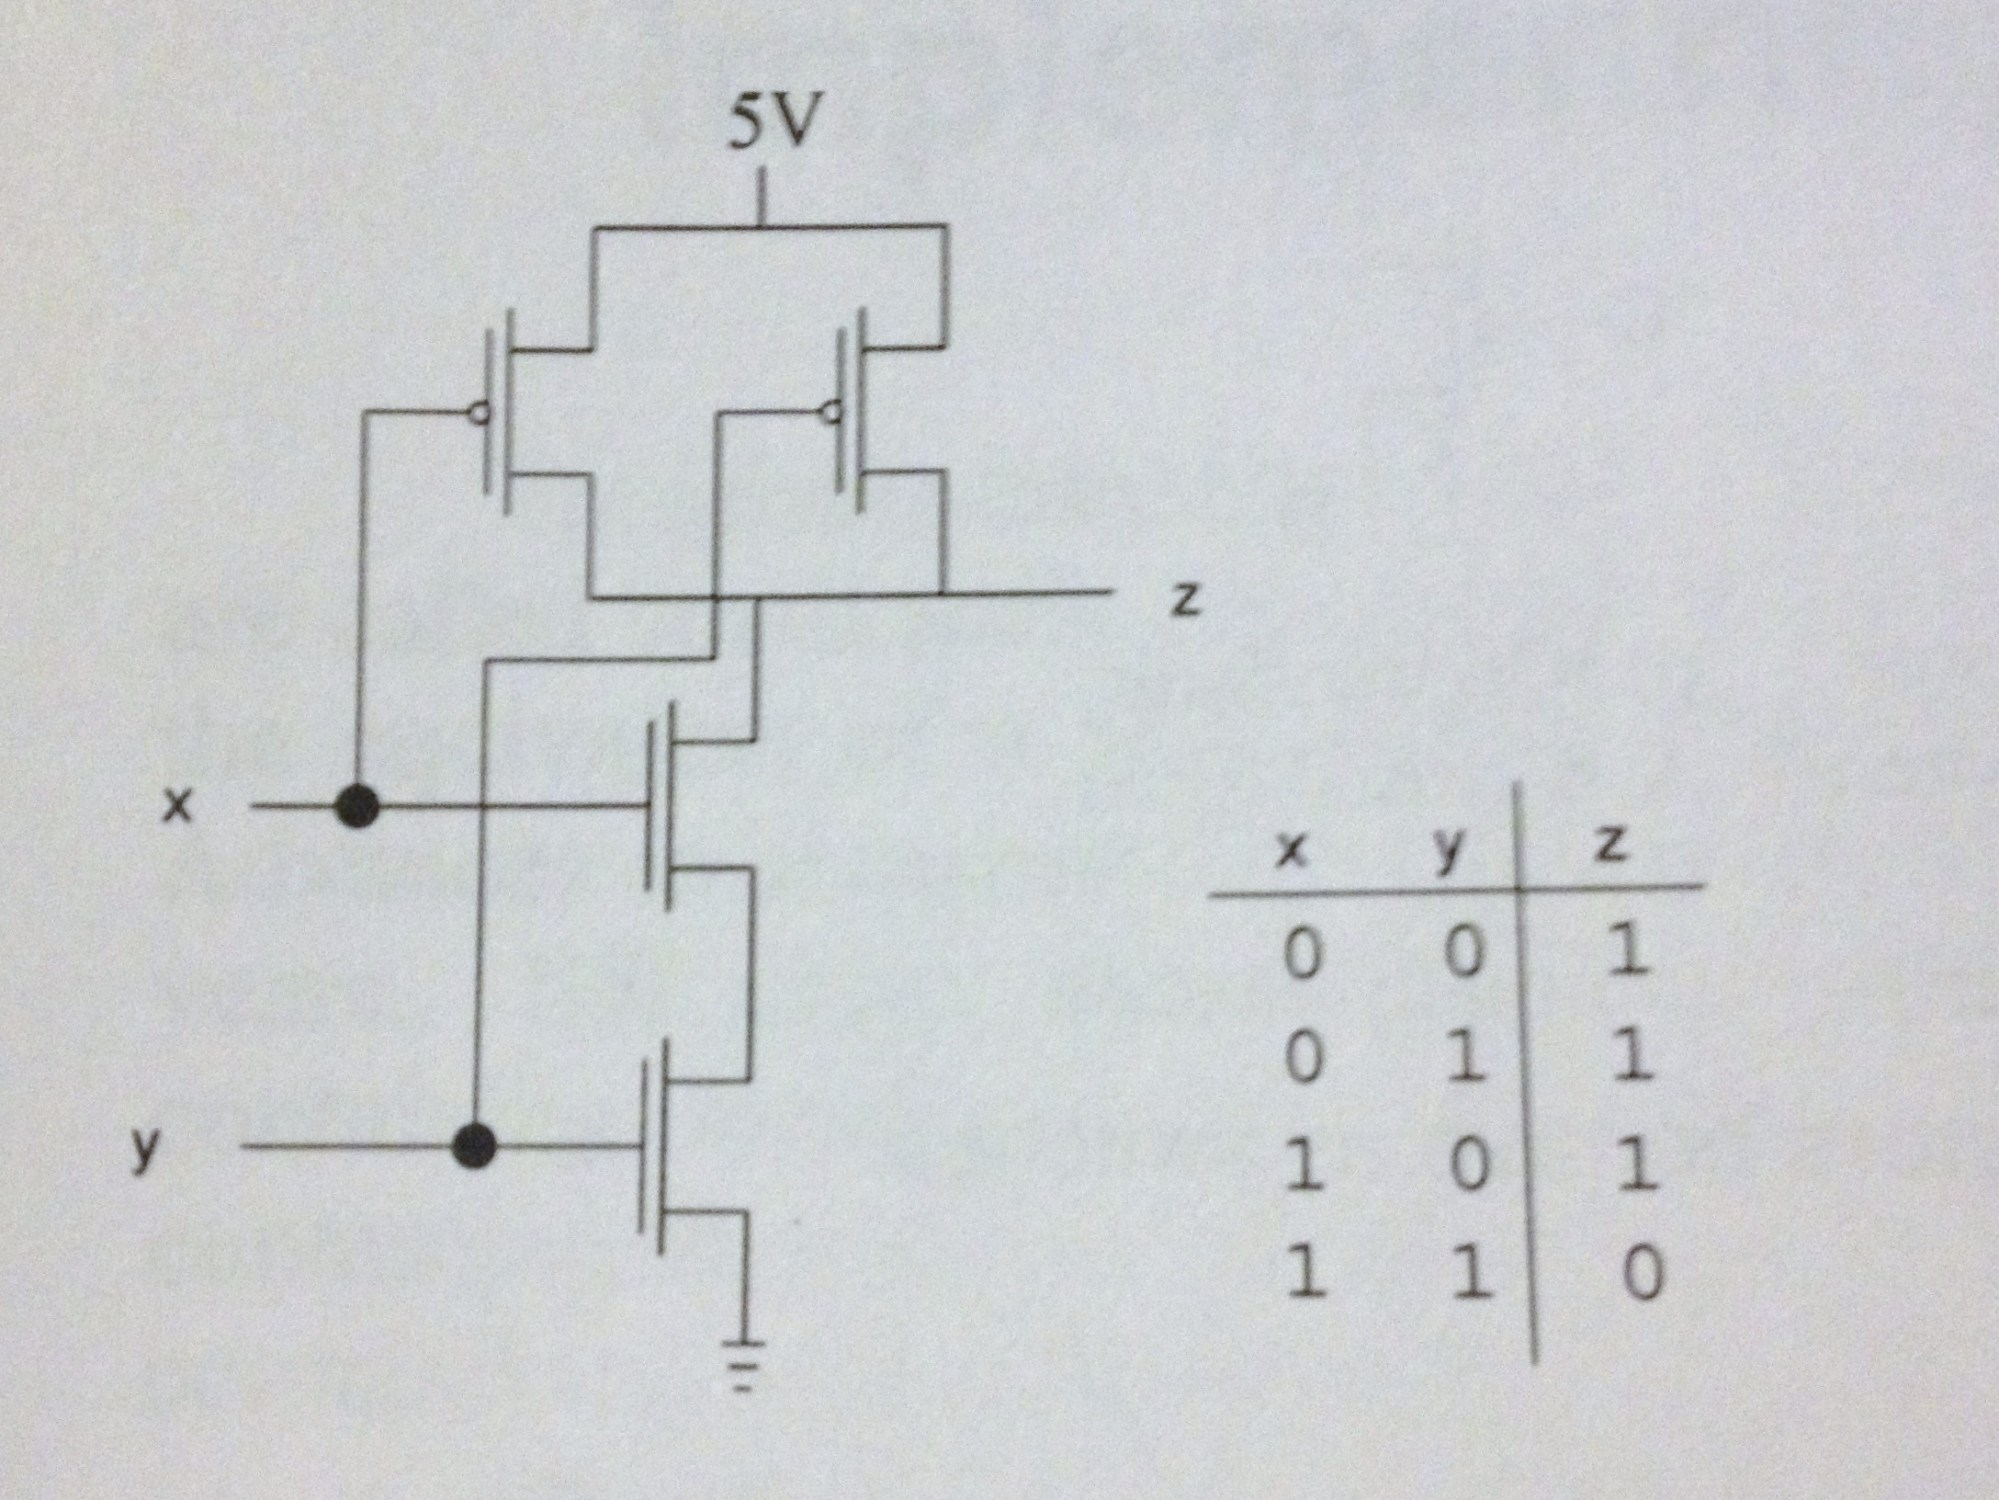 hight resolution of chatper 4 implementing digital circuits computer nand gate circuit diagram using transistor nand logic gate circuit